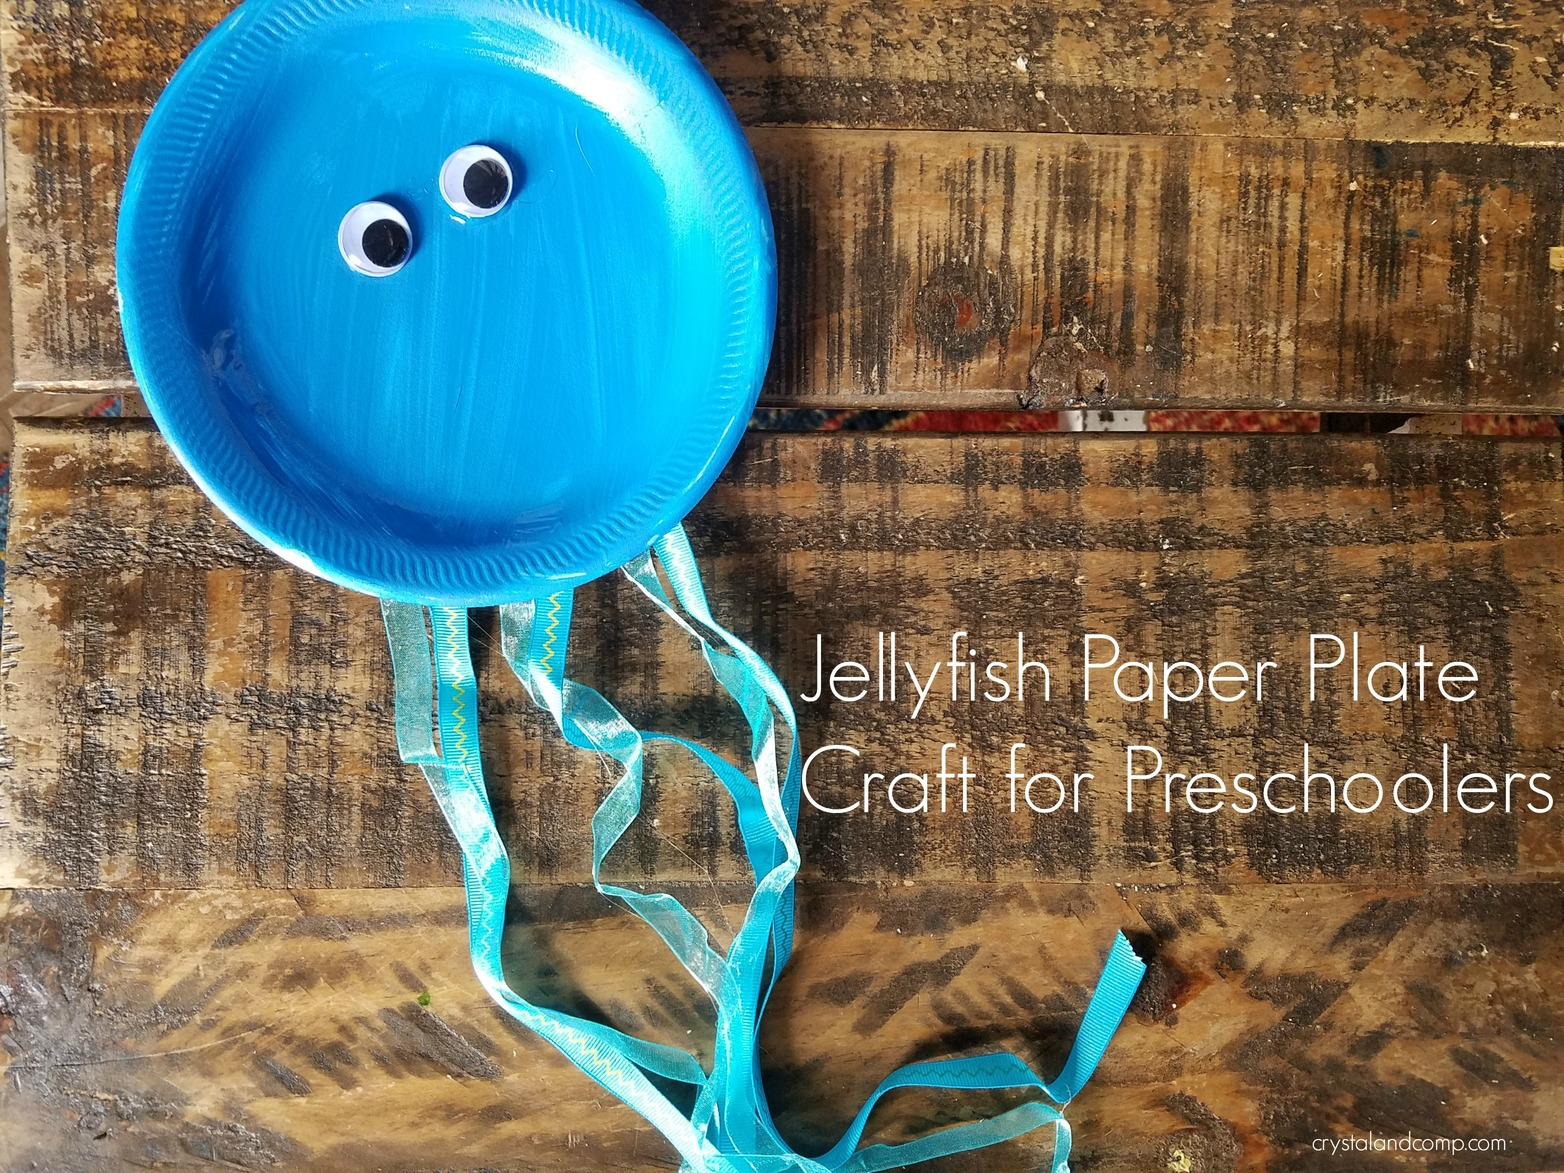 If you are a homeschool mom or just supplementing through the alphabet this craft is a great one to add to your list and you and your kiddos will love it! & J is for Jellyfish